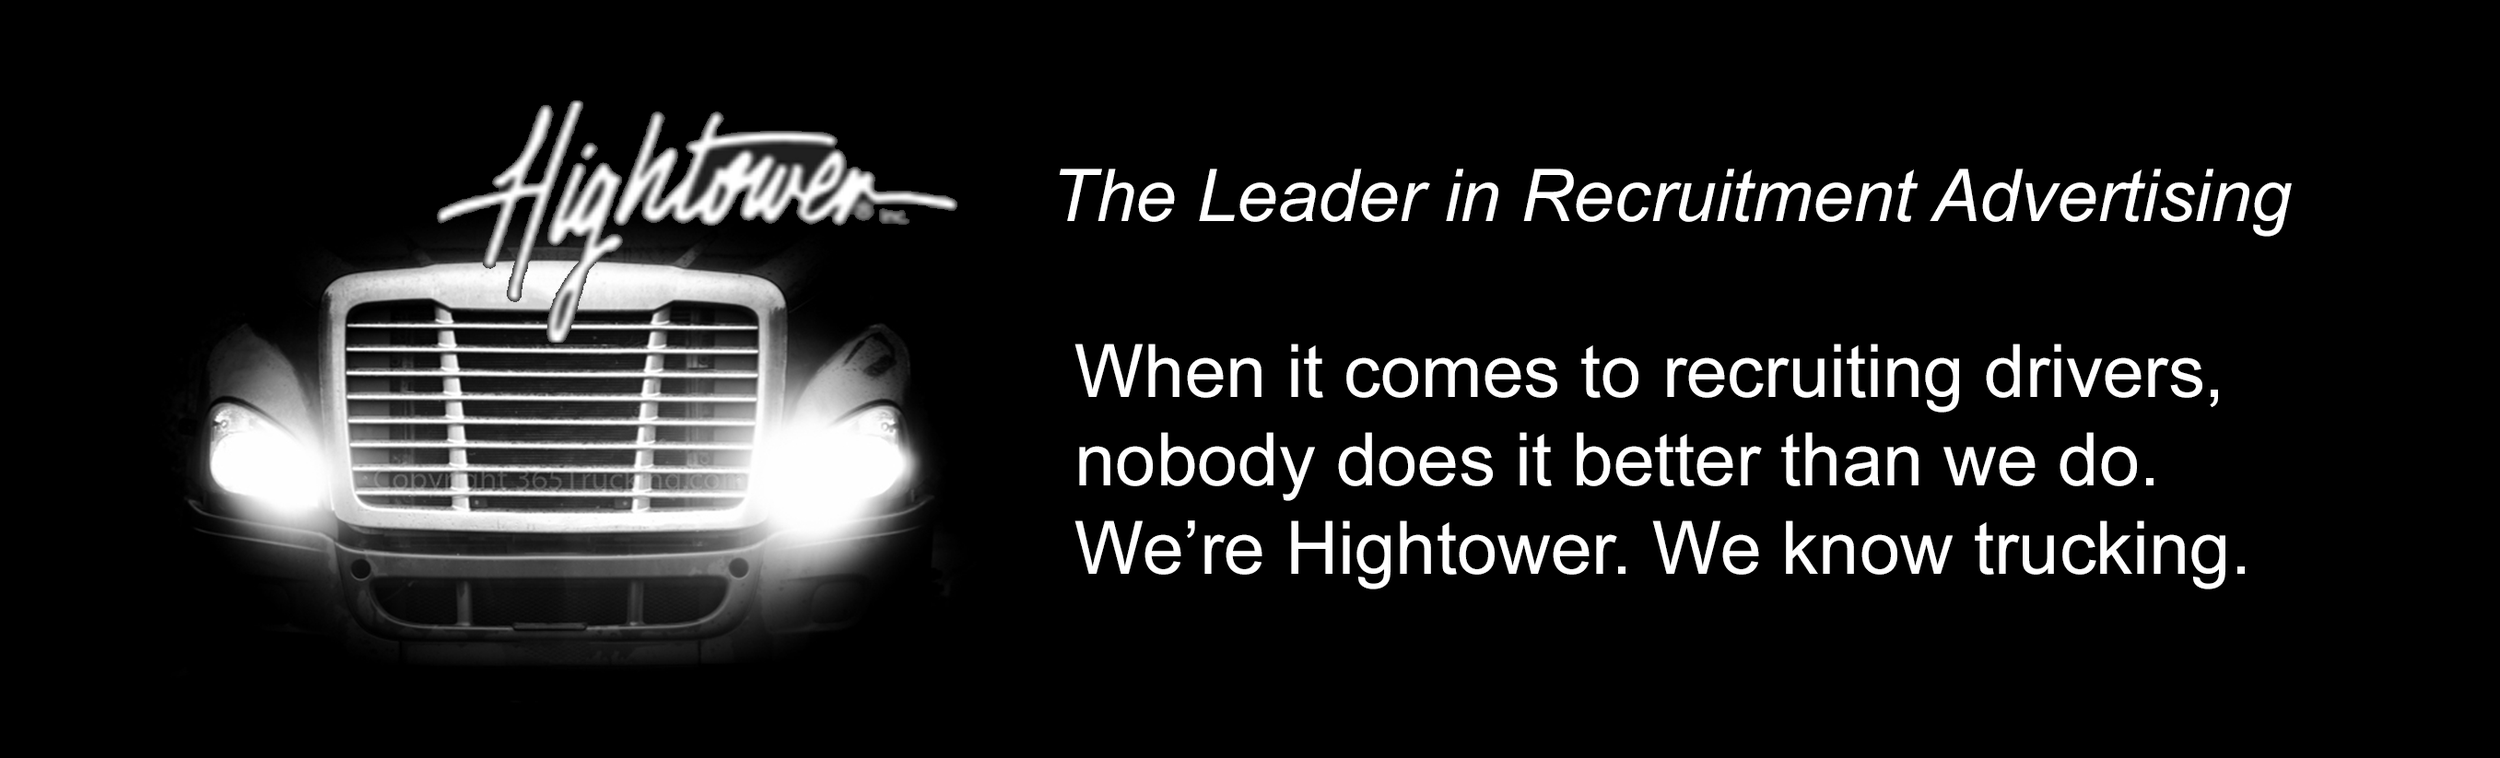 """With over 25 years in the truck driver recruiting industry, The Hightower Agency is one of the best recruitment advertising agencies. Get it touch today for a free consultation."""" Link to: http://info.hightoweragency.com/free-consultation"""